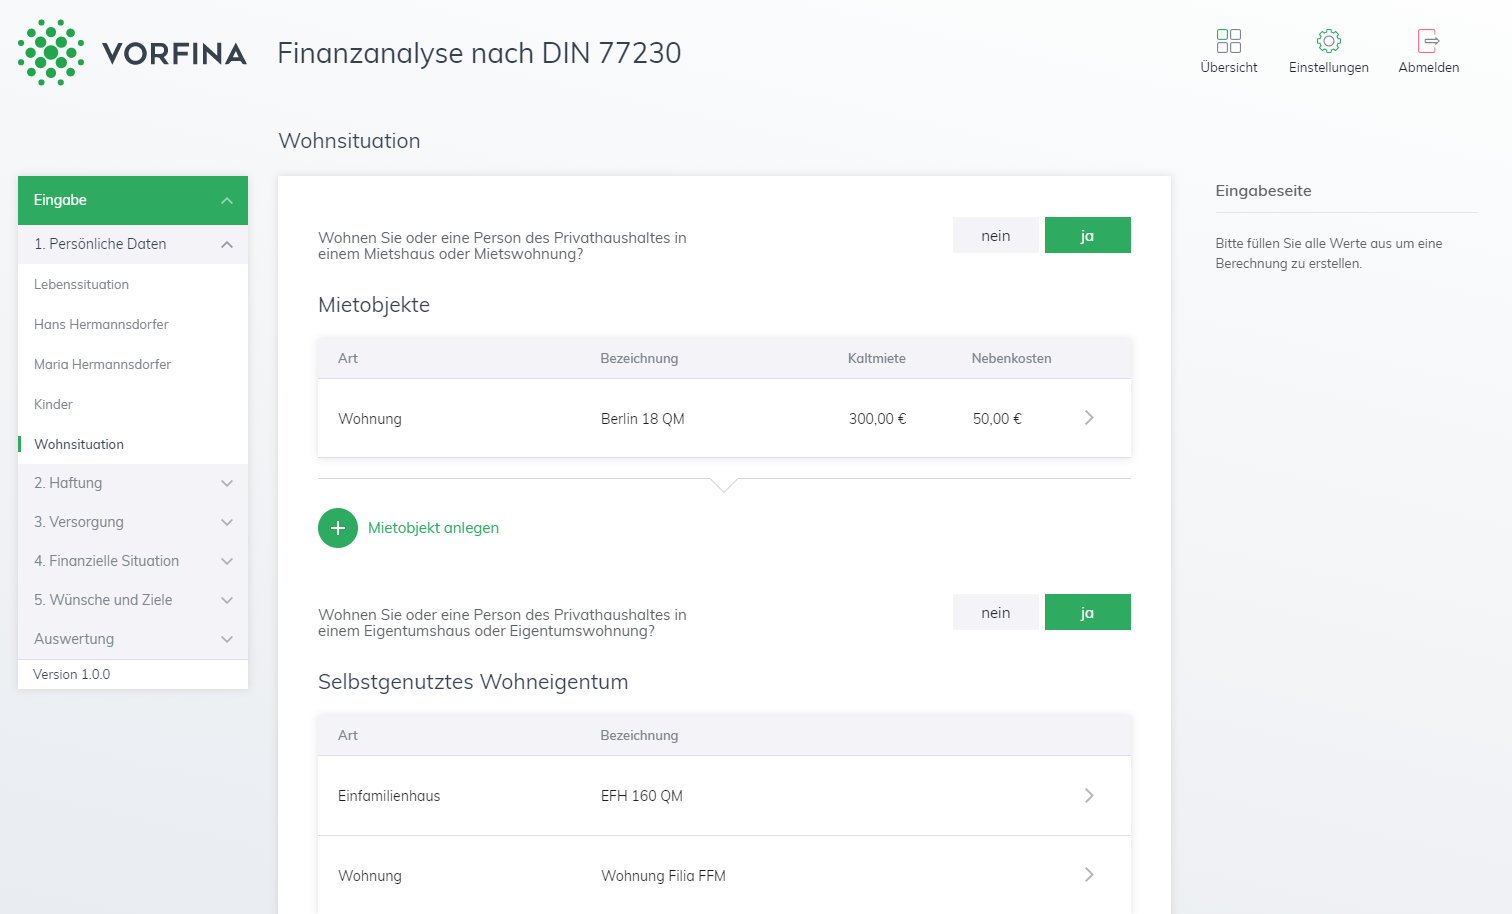 https://www.dinanalyse.de/wp-content/uploads/sites/3/2019/06/Kachel_6_Wohnsituation@2x.jpg